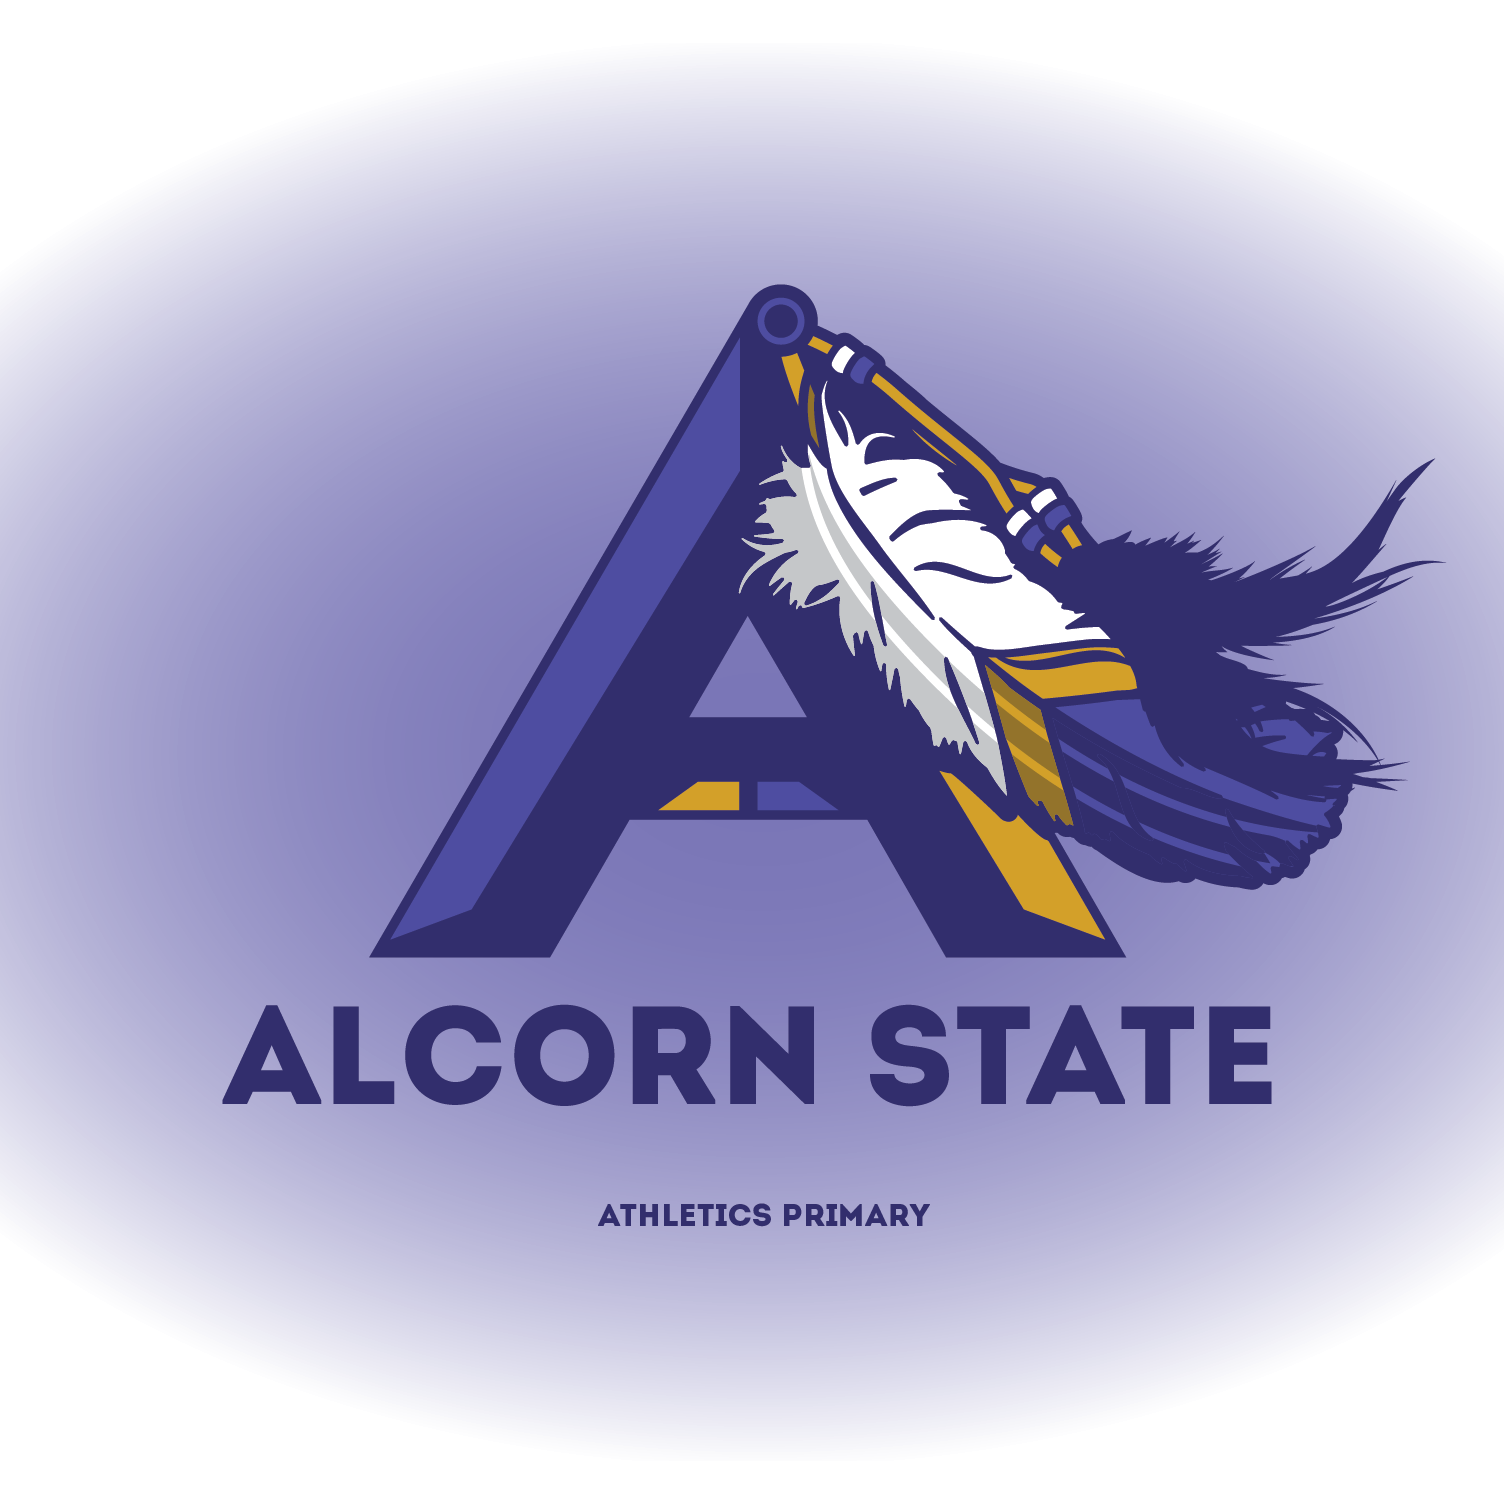 Alcorn State University Rebrand Concept. This is a concept.